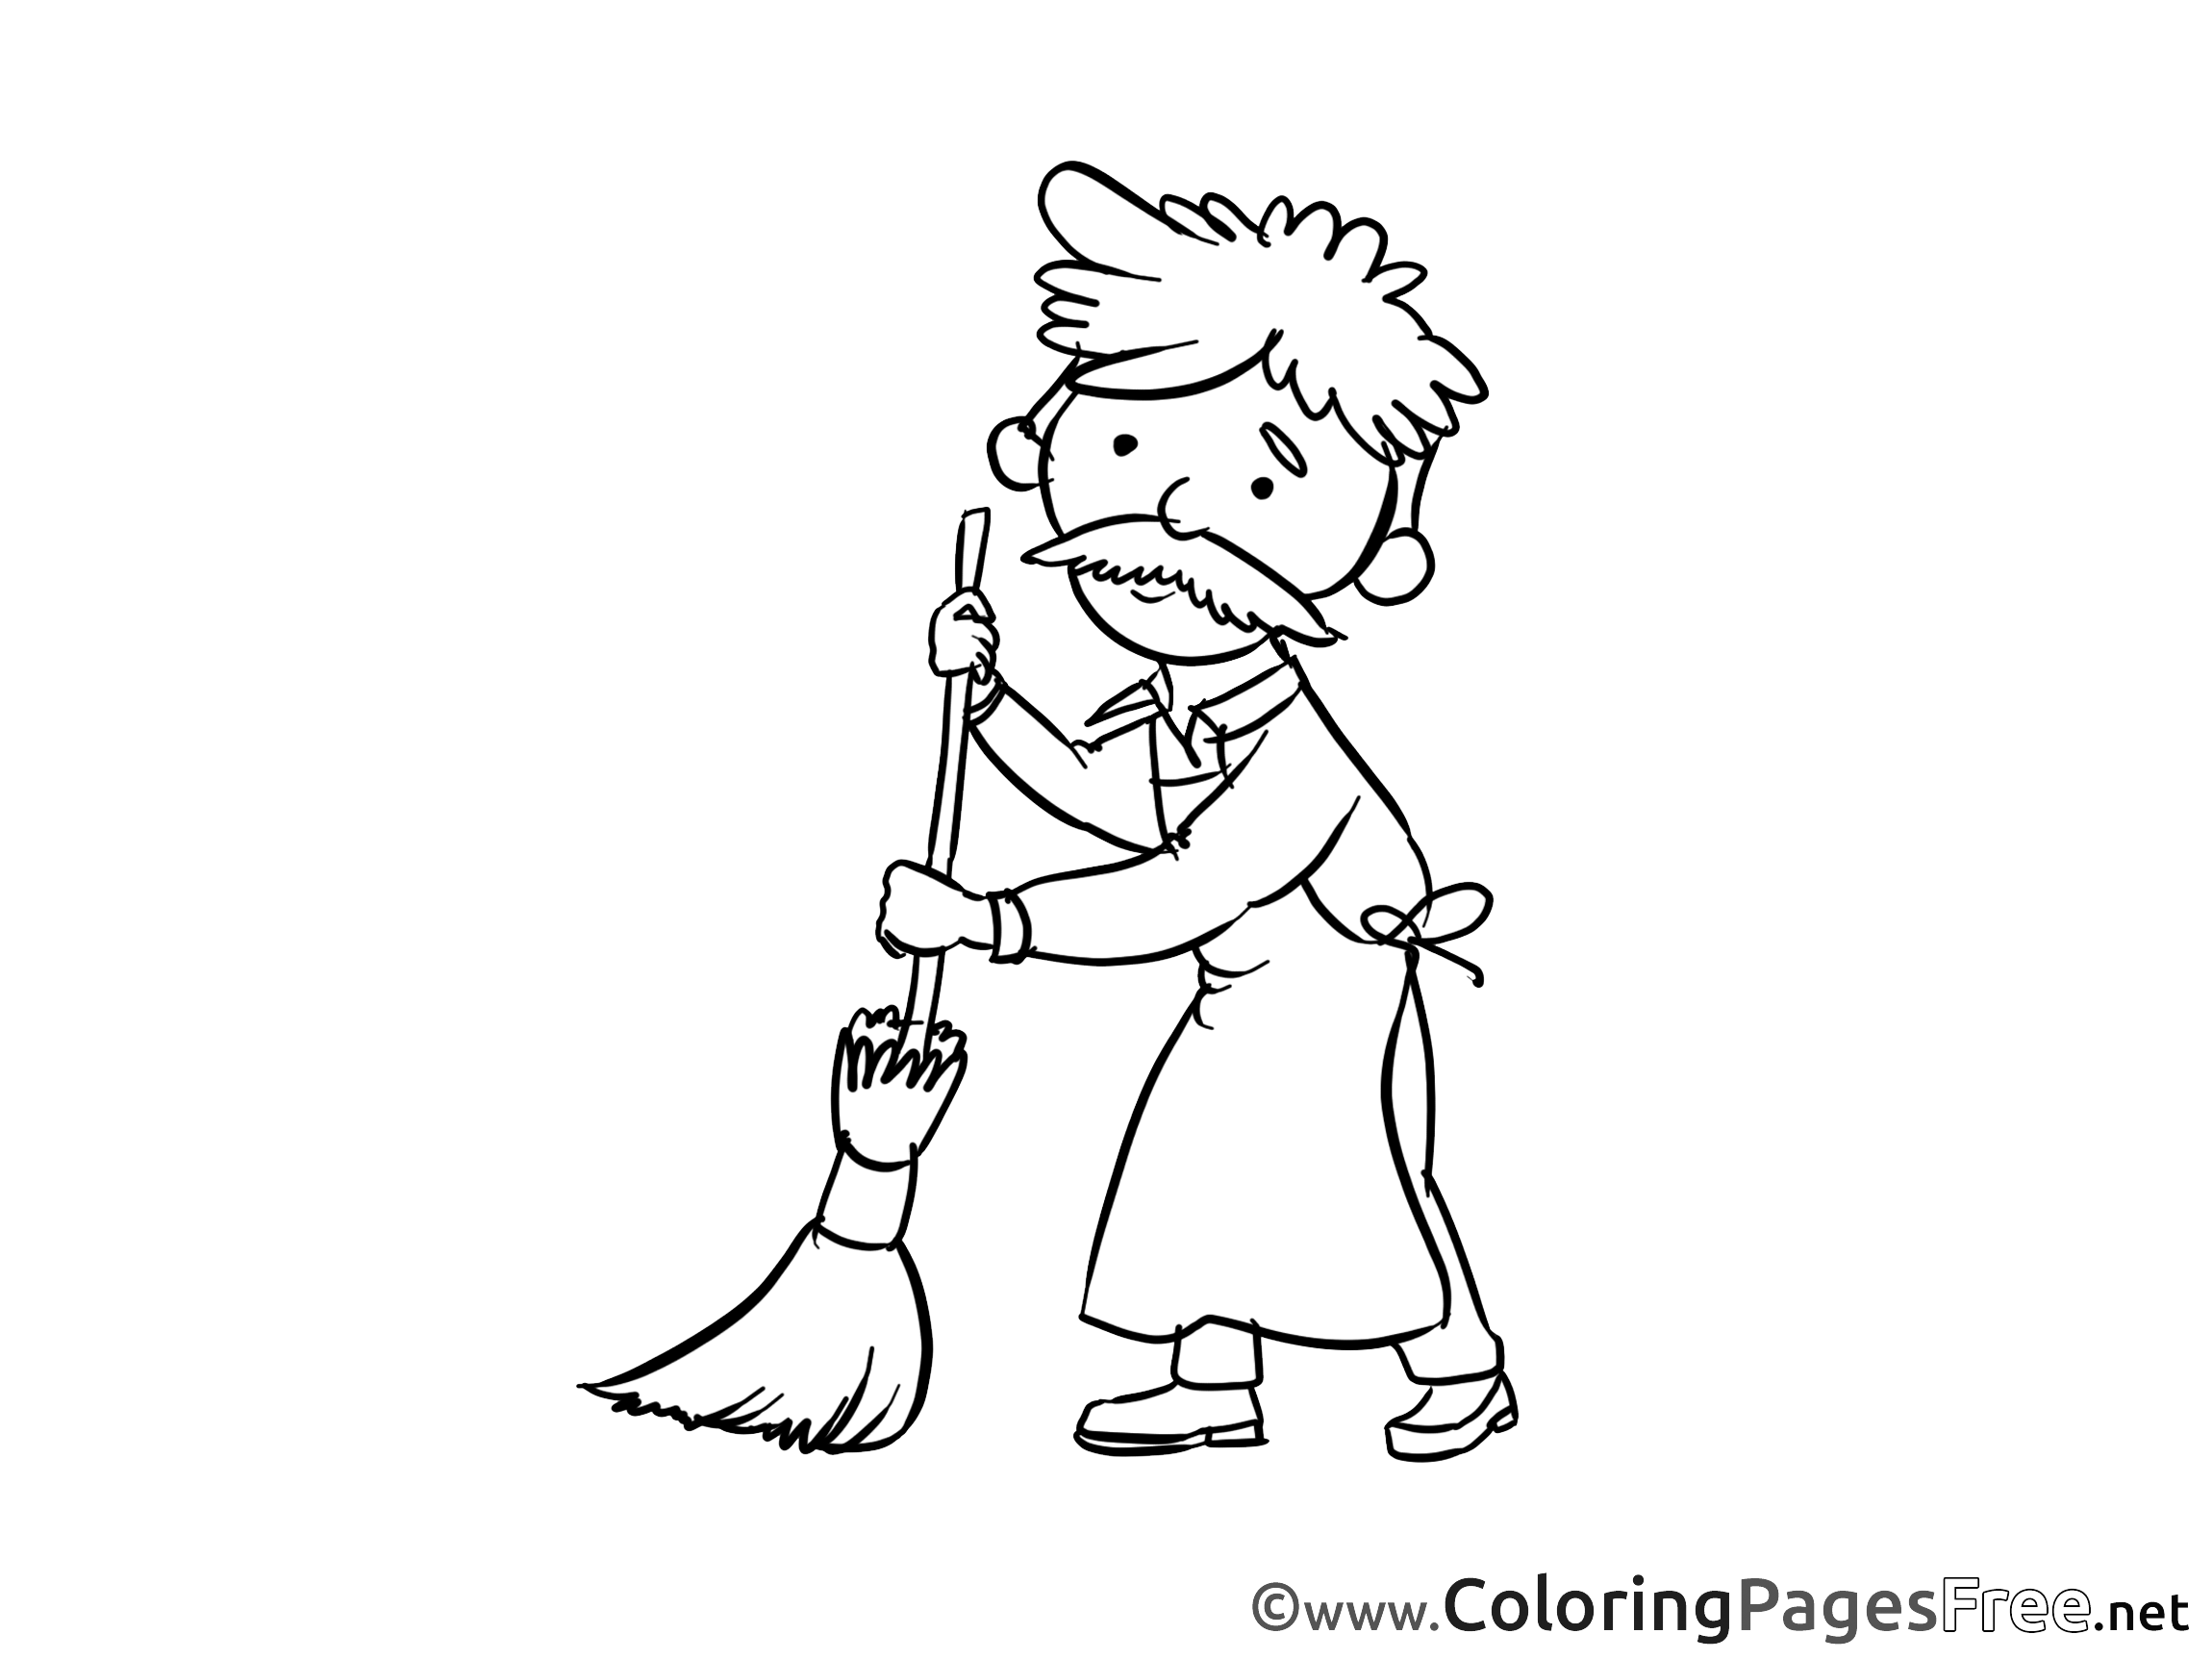 Janitor download printable Coloring Pages